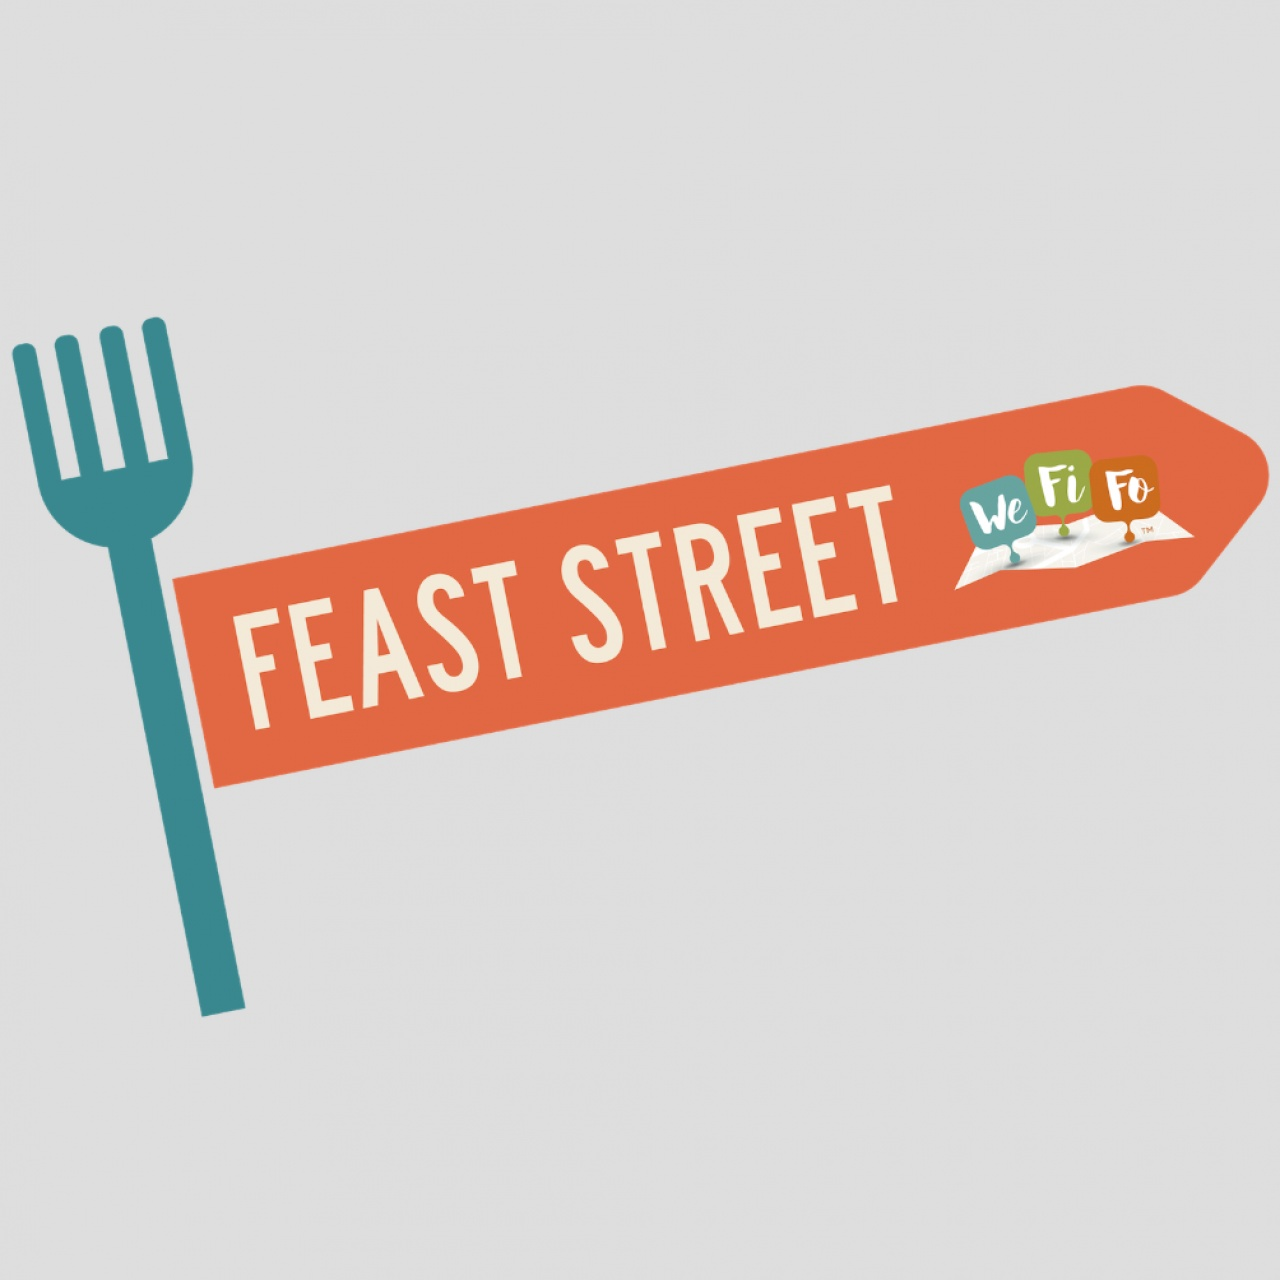 Brewhouse & Kitchen Feast Street 2nd Sep 2018 - WeFiFo